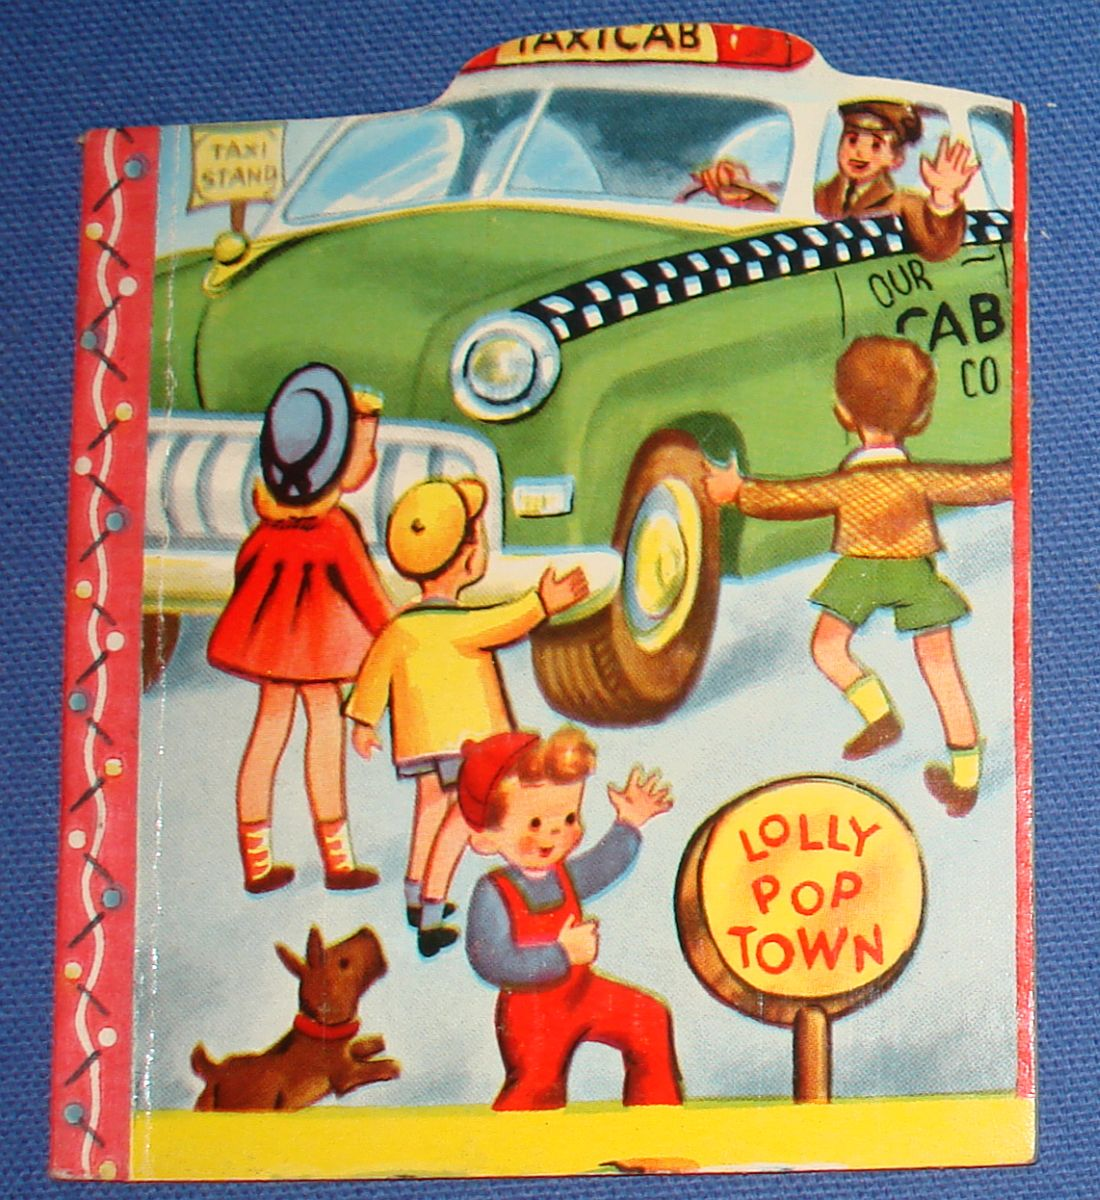 Vintage 1950 Samuel Lowe Company Lolly Pop Town Shaped Story Books Taxi Cab 587-5